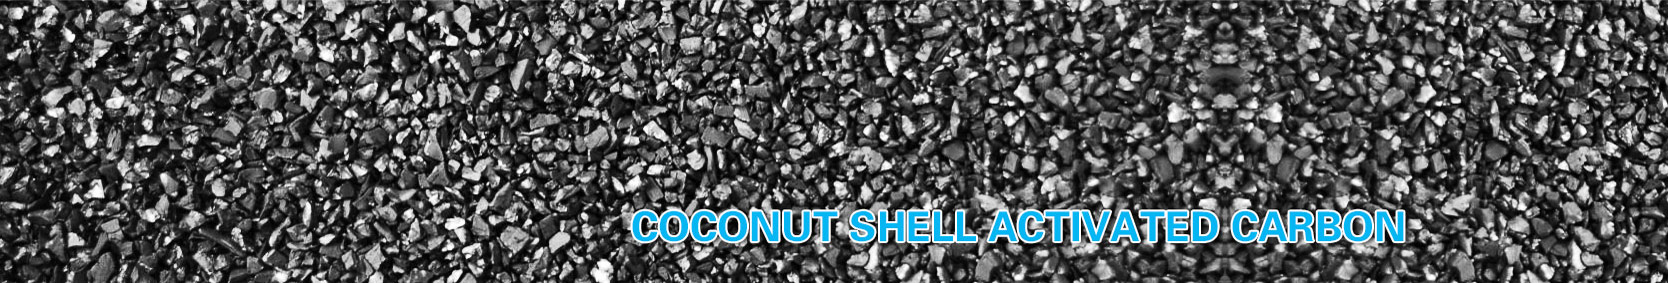 Coconut Shell Activated Carbons for Gold Recovery